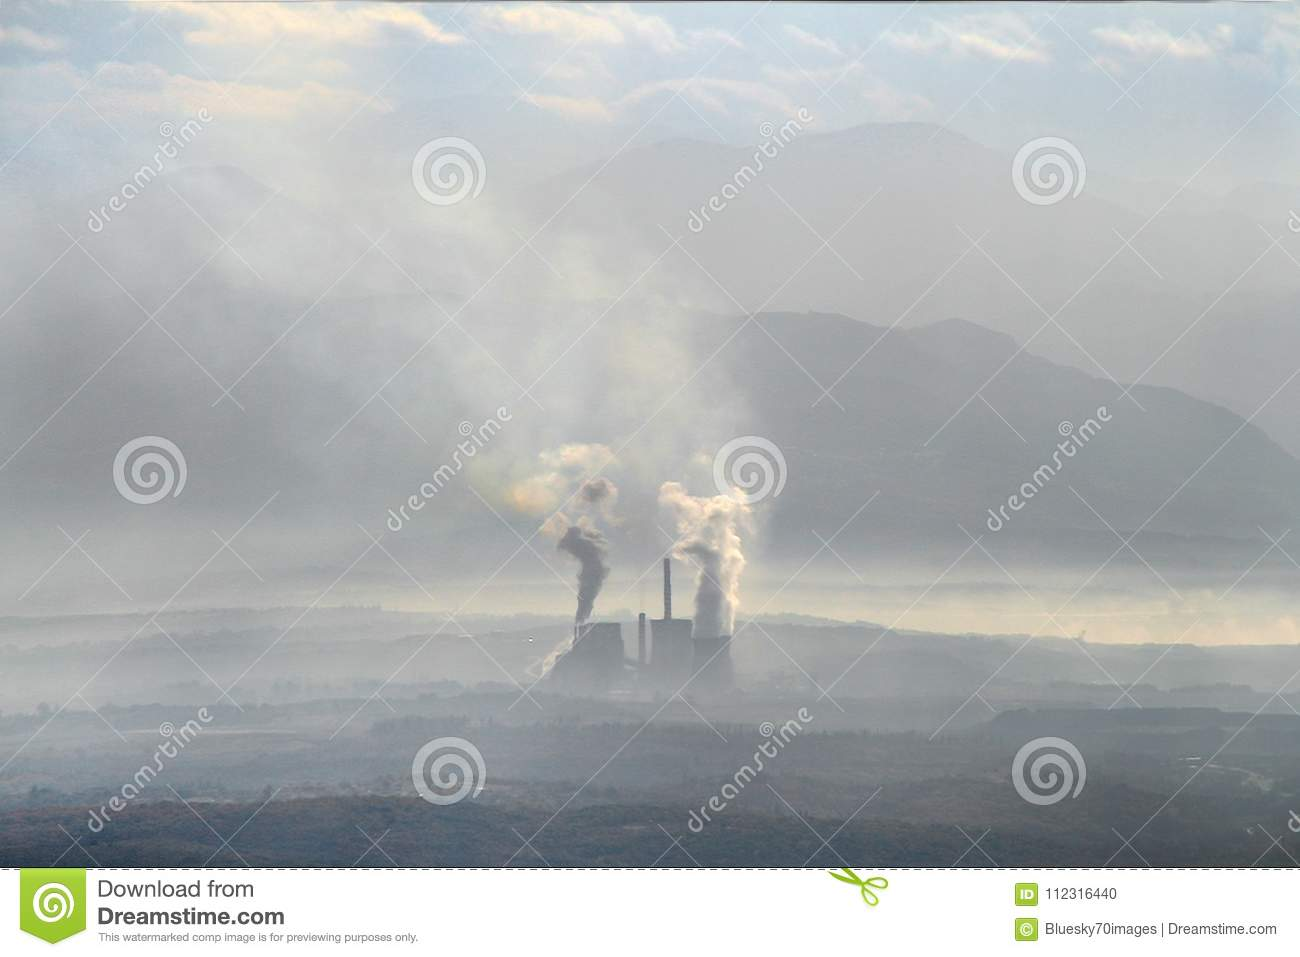 Landscape in mist and pollution. Factory pollutes the atmosphere harmful emissions. Greece